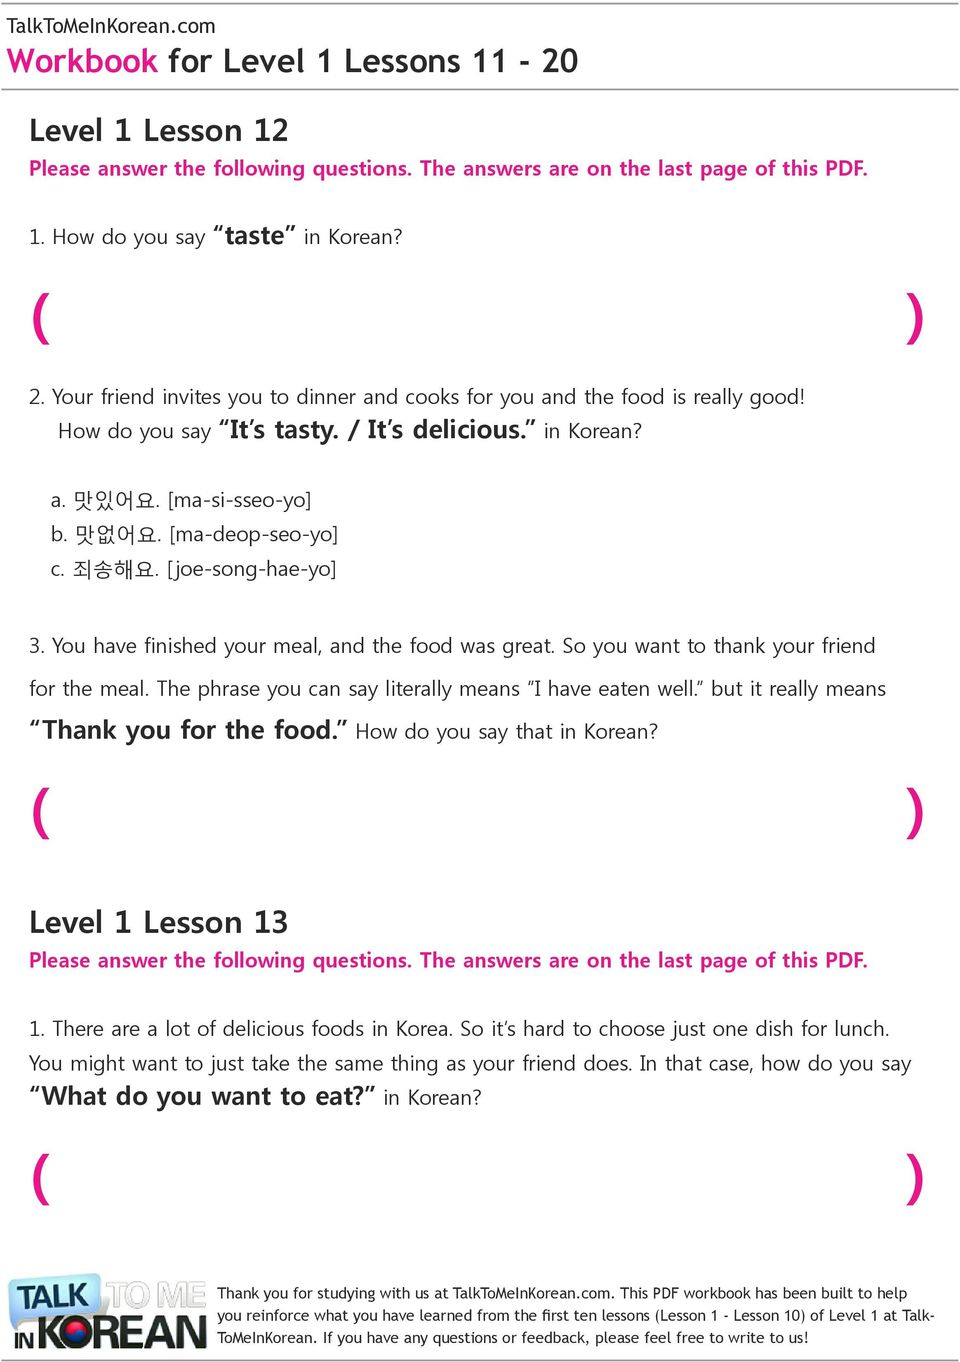 Level 1 Lesson 11  TalkToMeInKorean com Workbook for Level 1